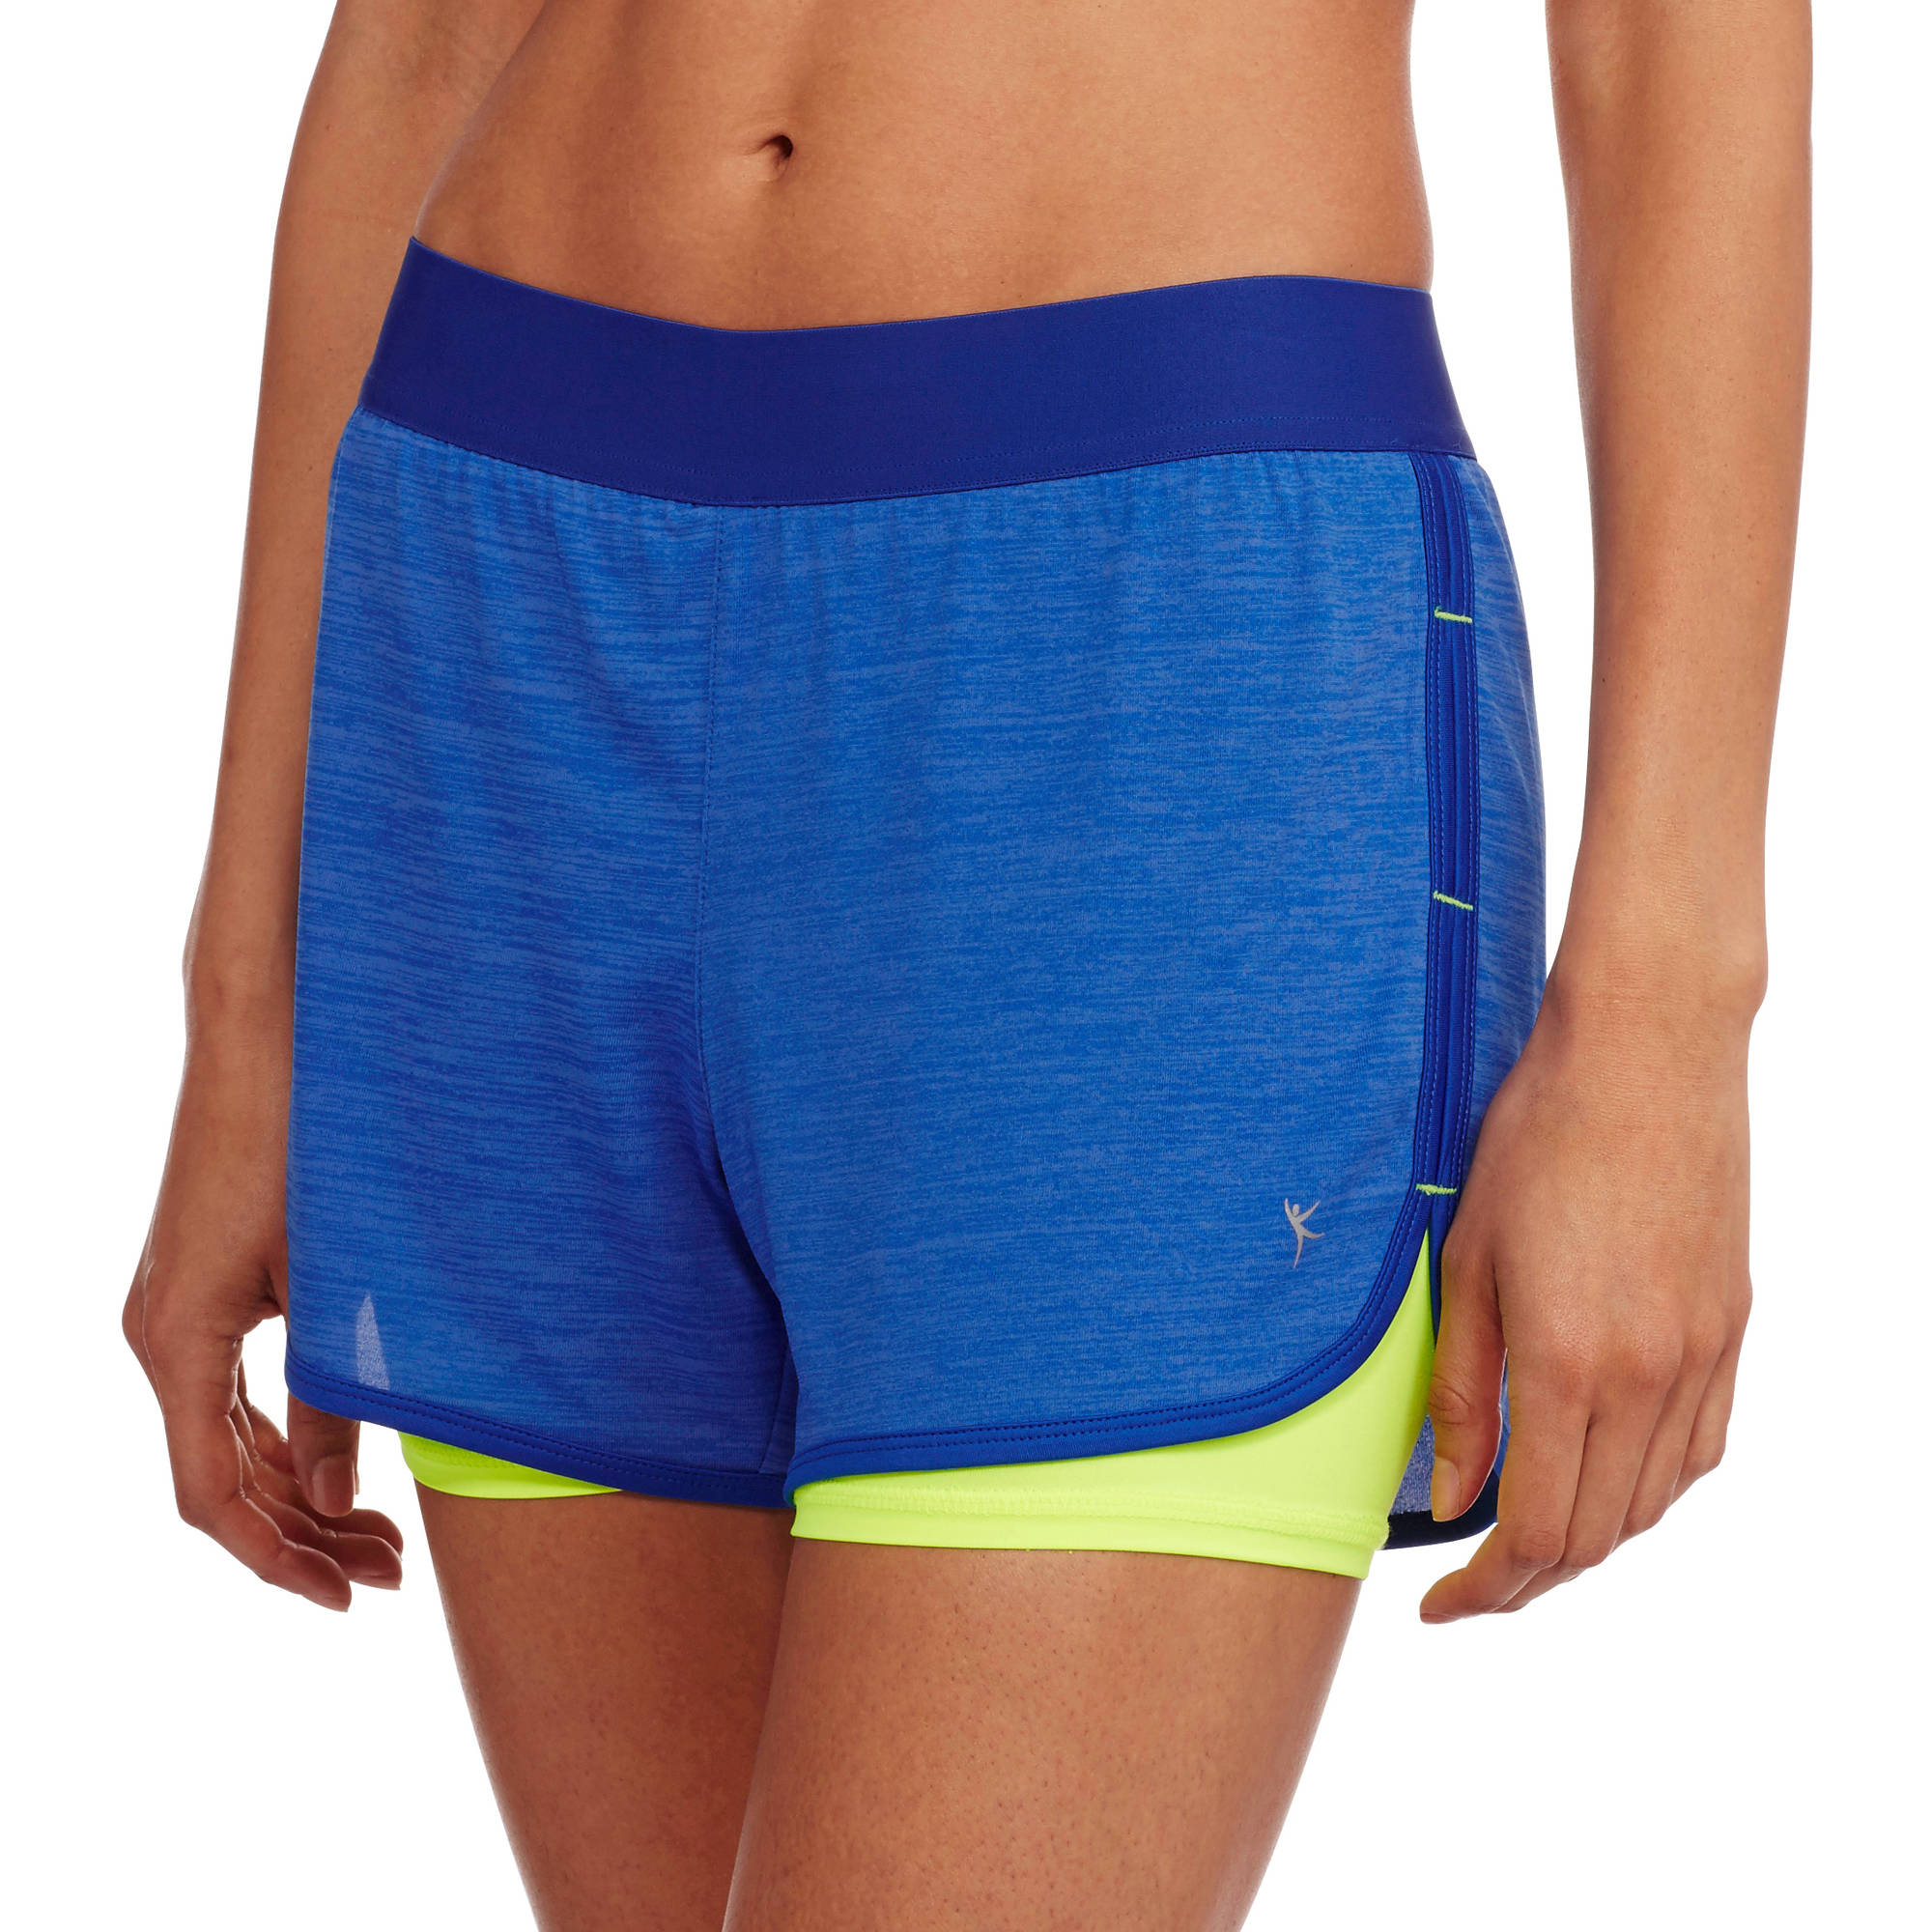 Danskin Now Women's Active 2fer Knit Running Shorts